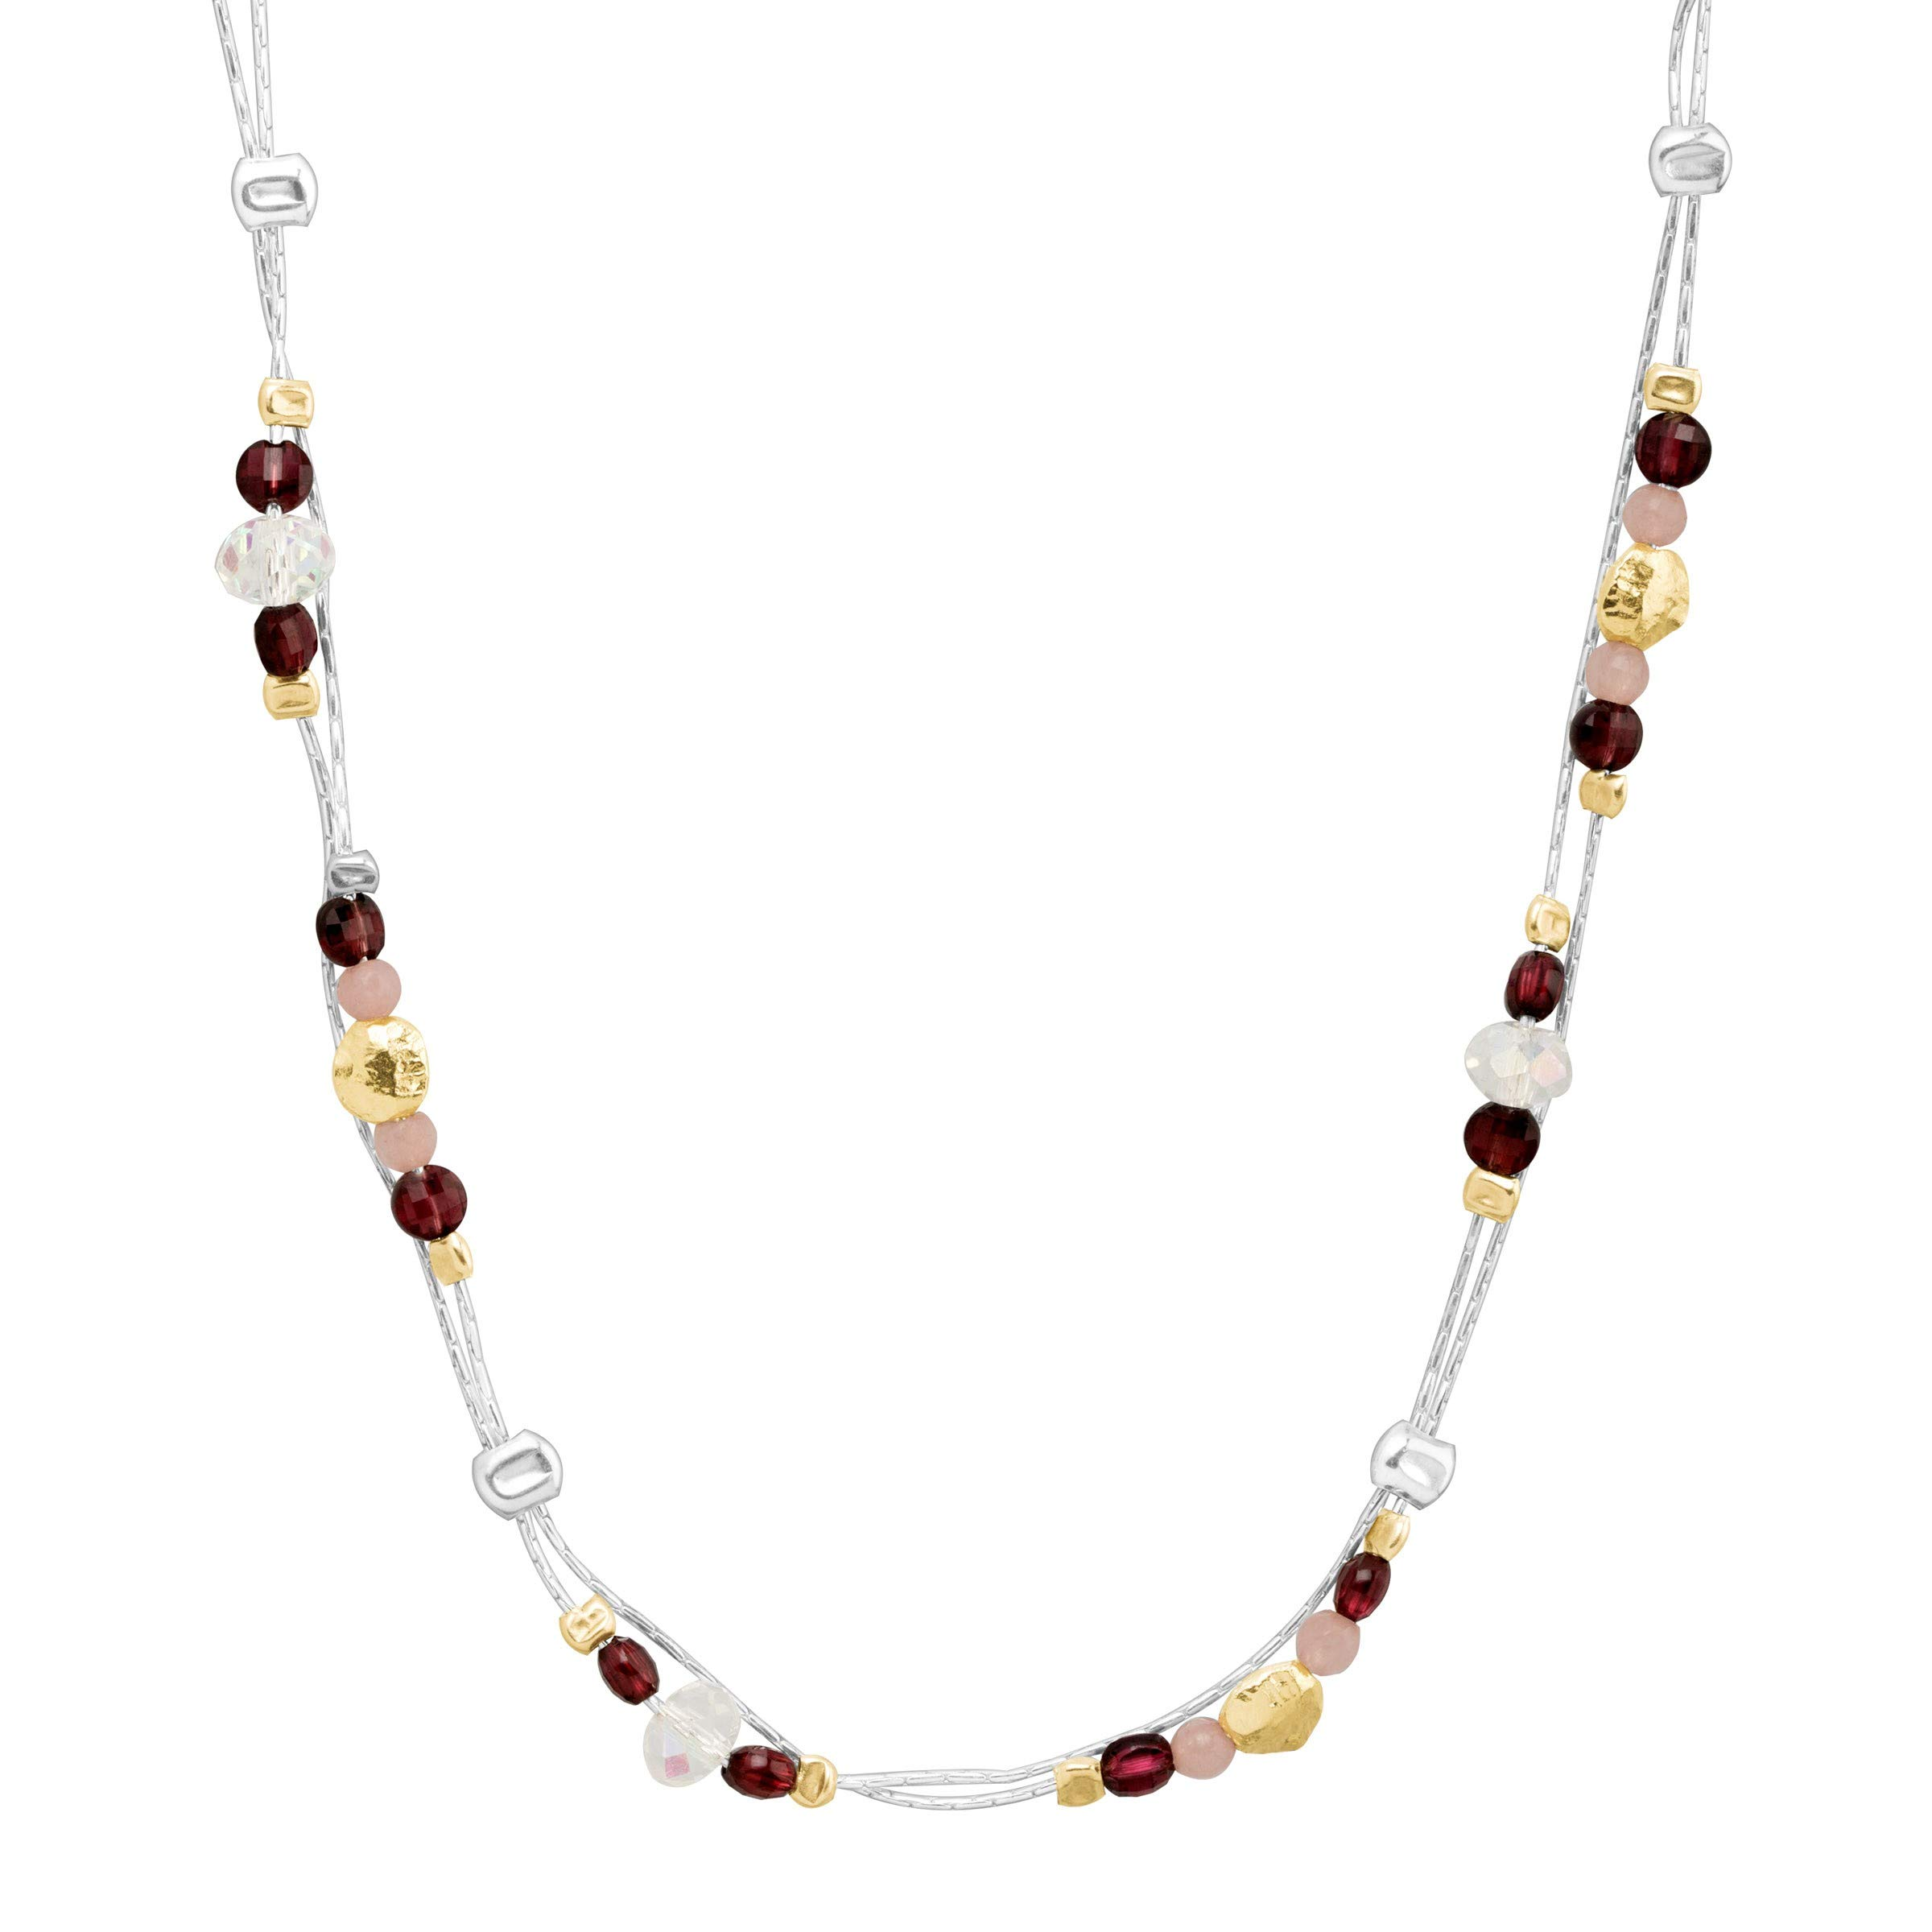 Silpada 'Sunrise and Shine' Natural Garnet, Pink Jade, Crystal Necklace in Sterling Silver & 14K Gold Plate